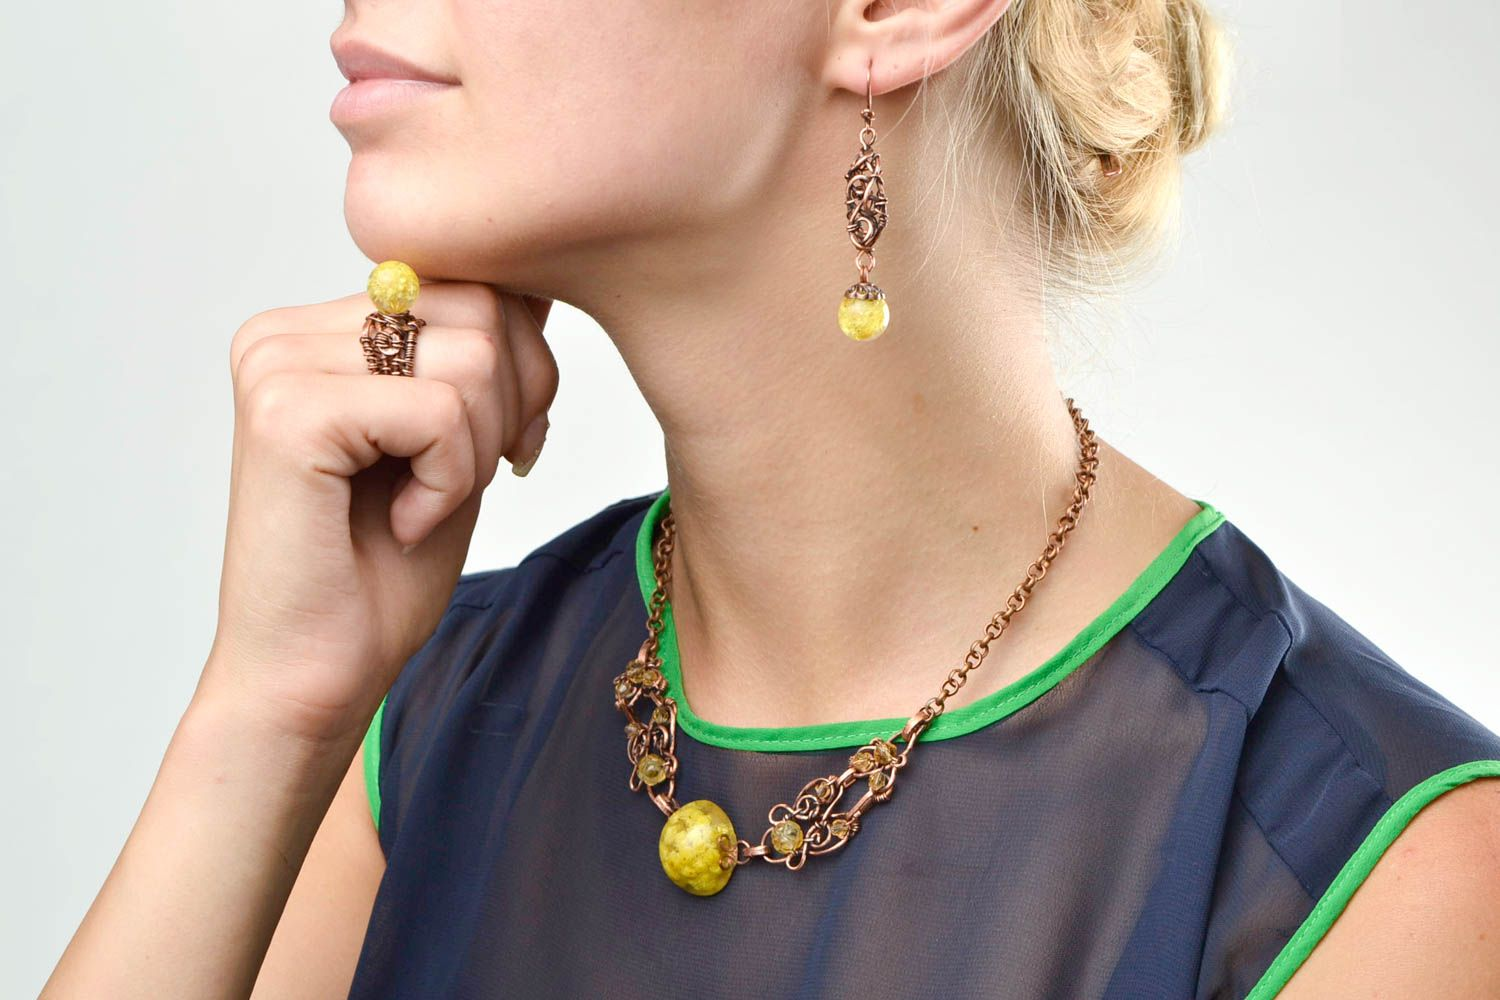 Handmade jewelry set wire wrap necklace dangling earrings seal ring gift for her photo 2